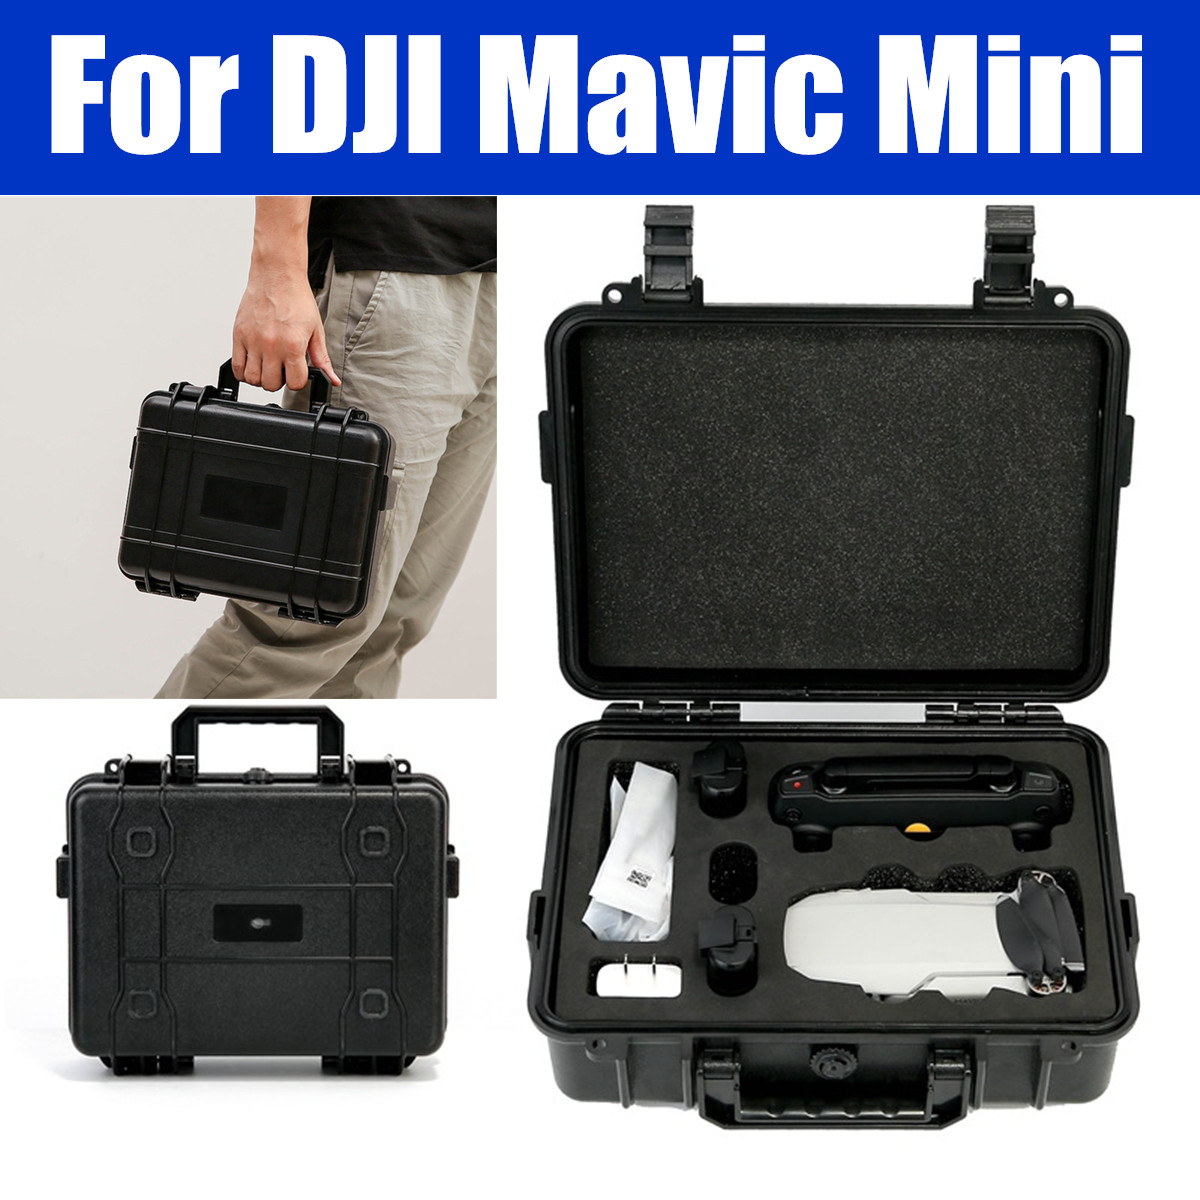 Portable Hard Carrying Case Storage Bag For DJI Mavic Mini Drone & Accessories Explosion-proof Shockproof Hardshell Drone Boxes